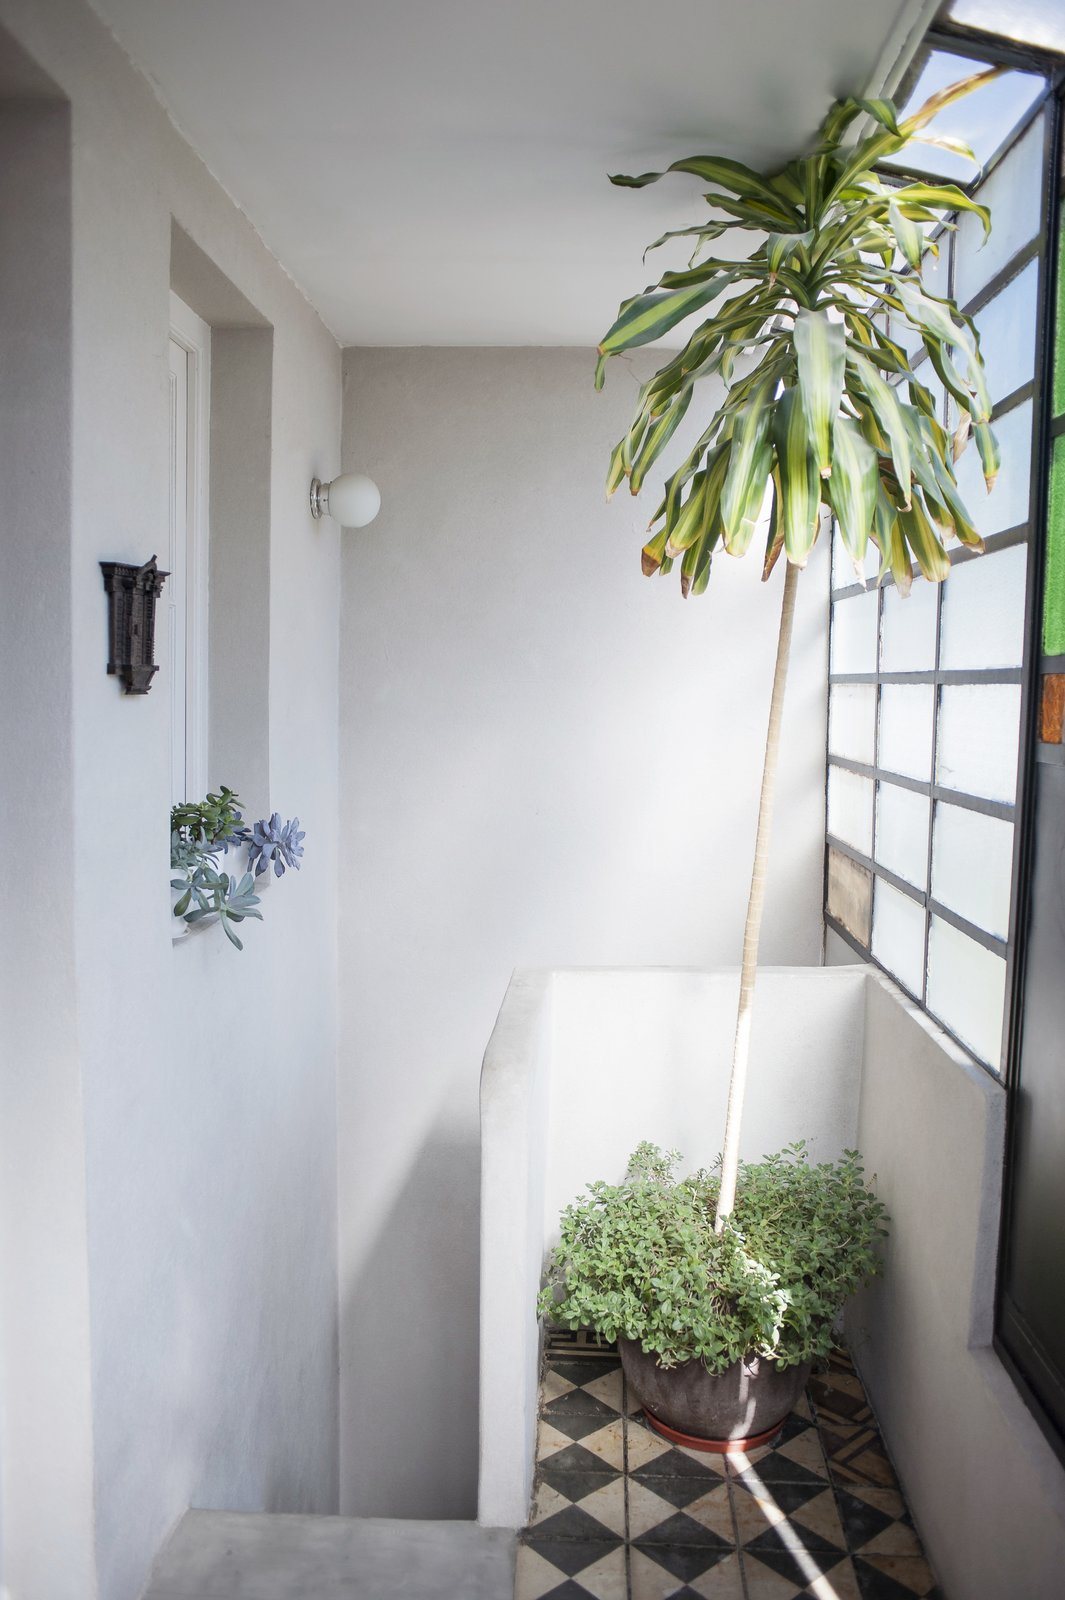 The halway upstairs gets natural light during the entire day. Artigas by melisa